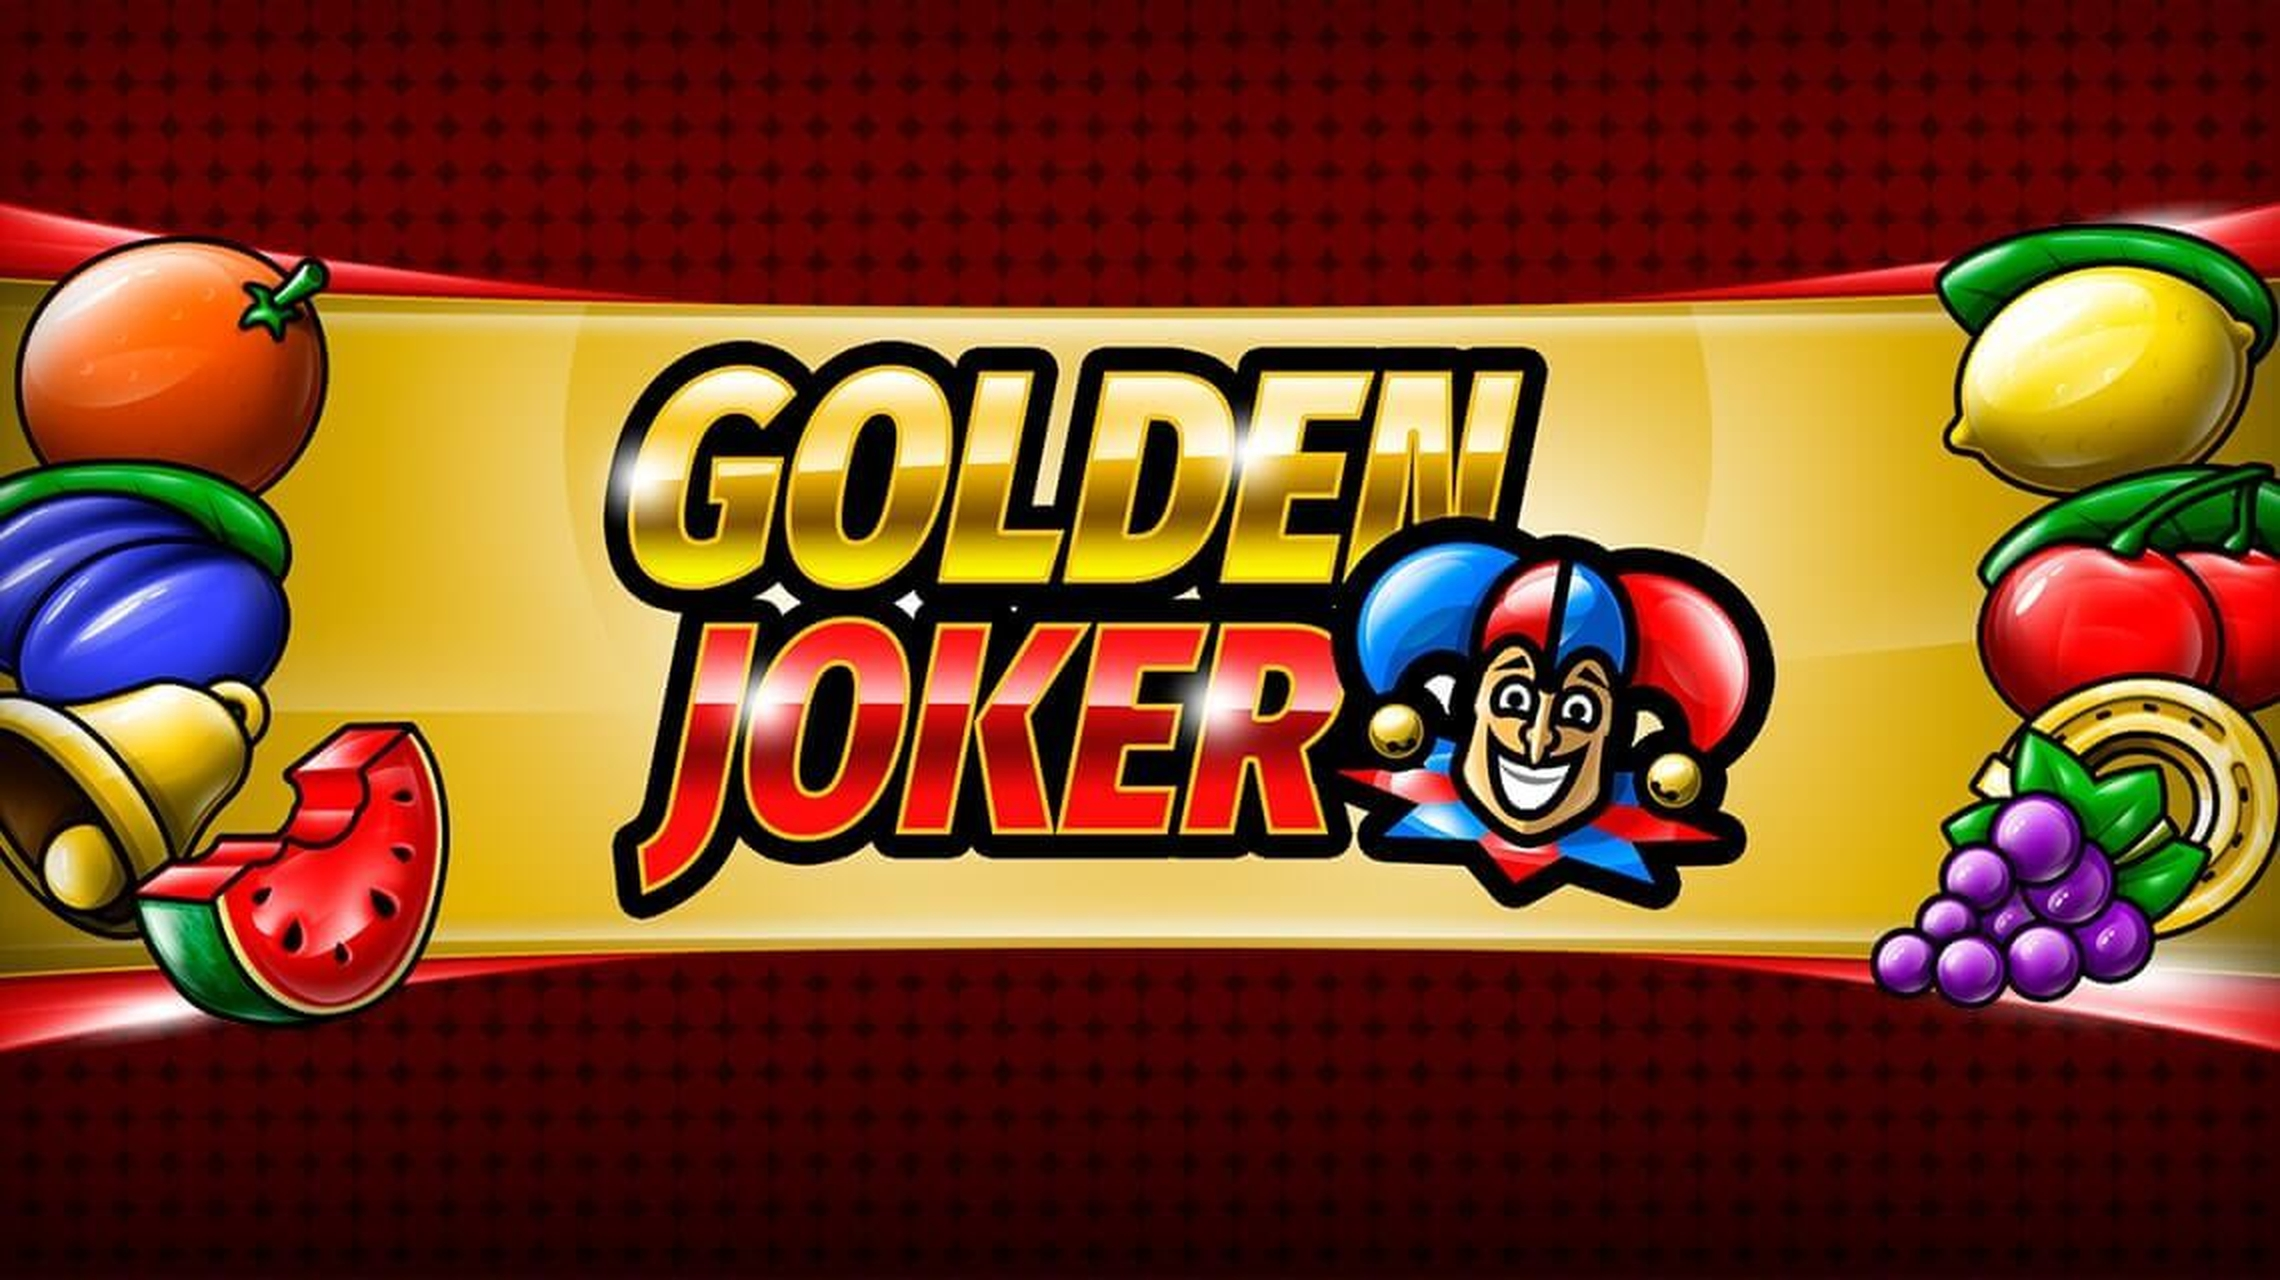 The Golden Joker Online Slot Demo Game by Amatic Industries